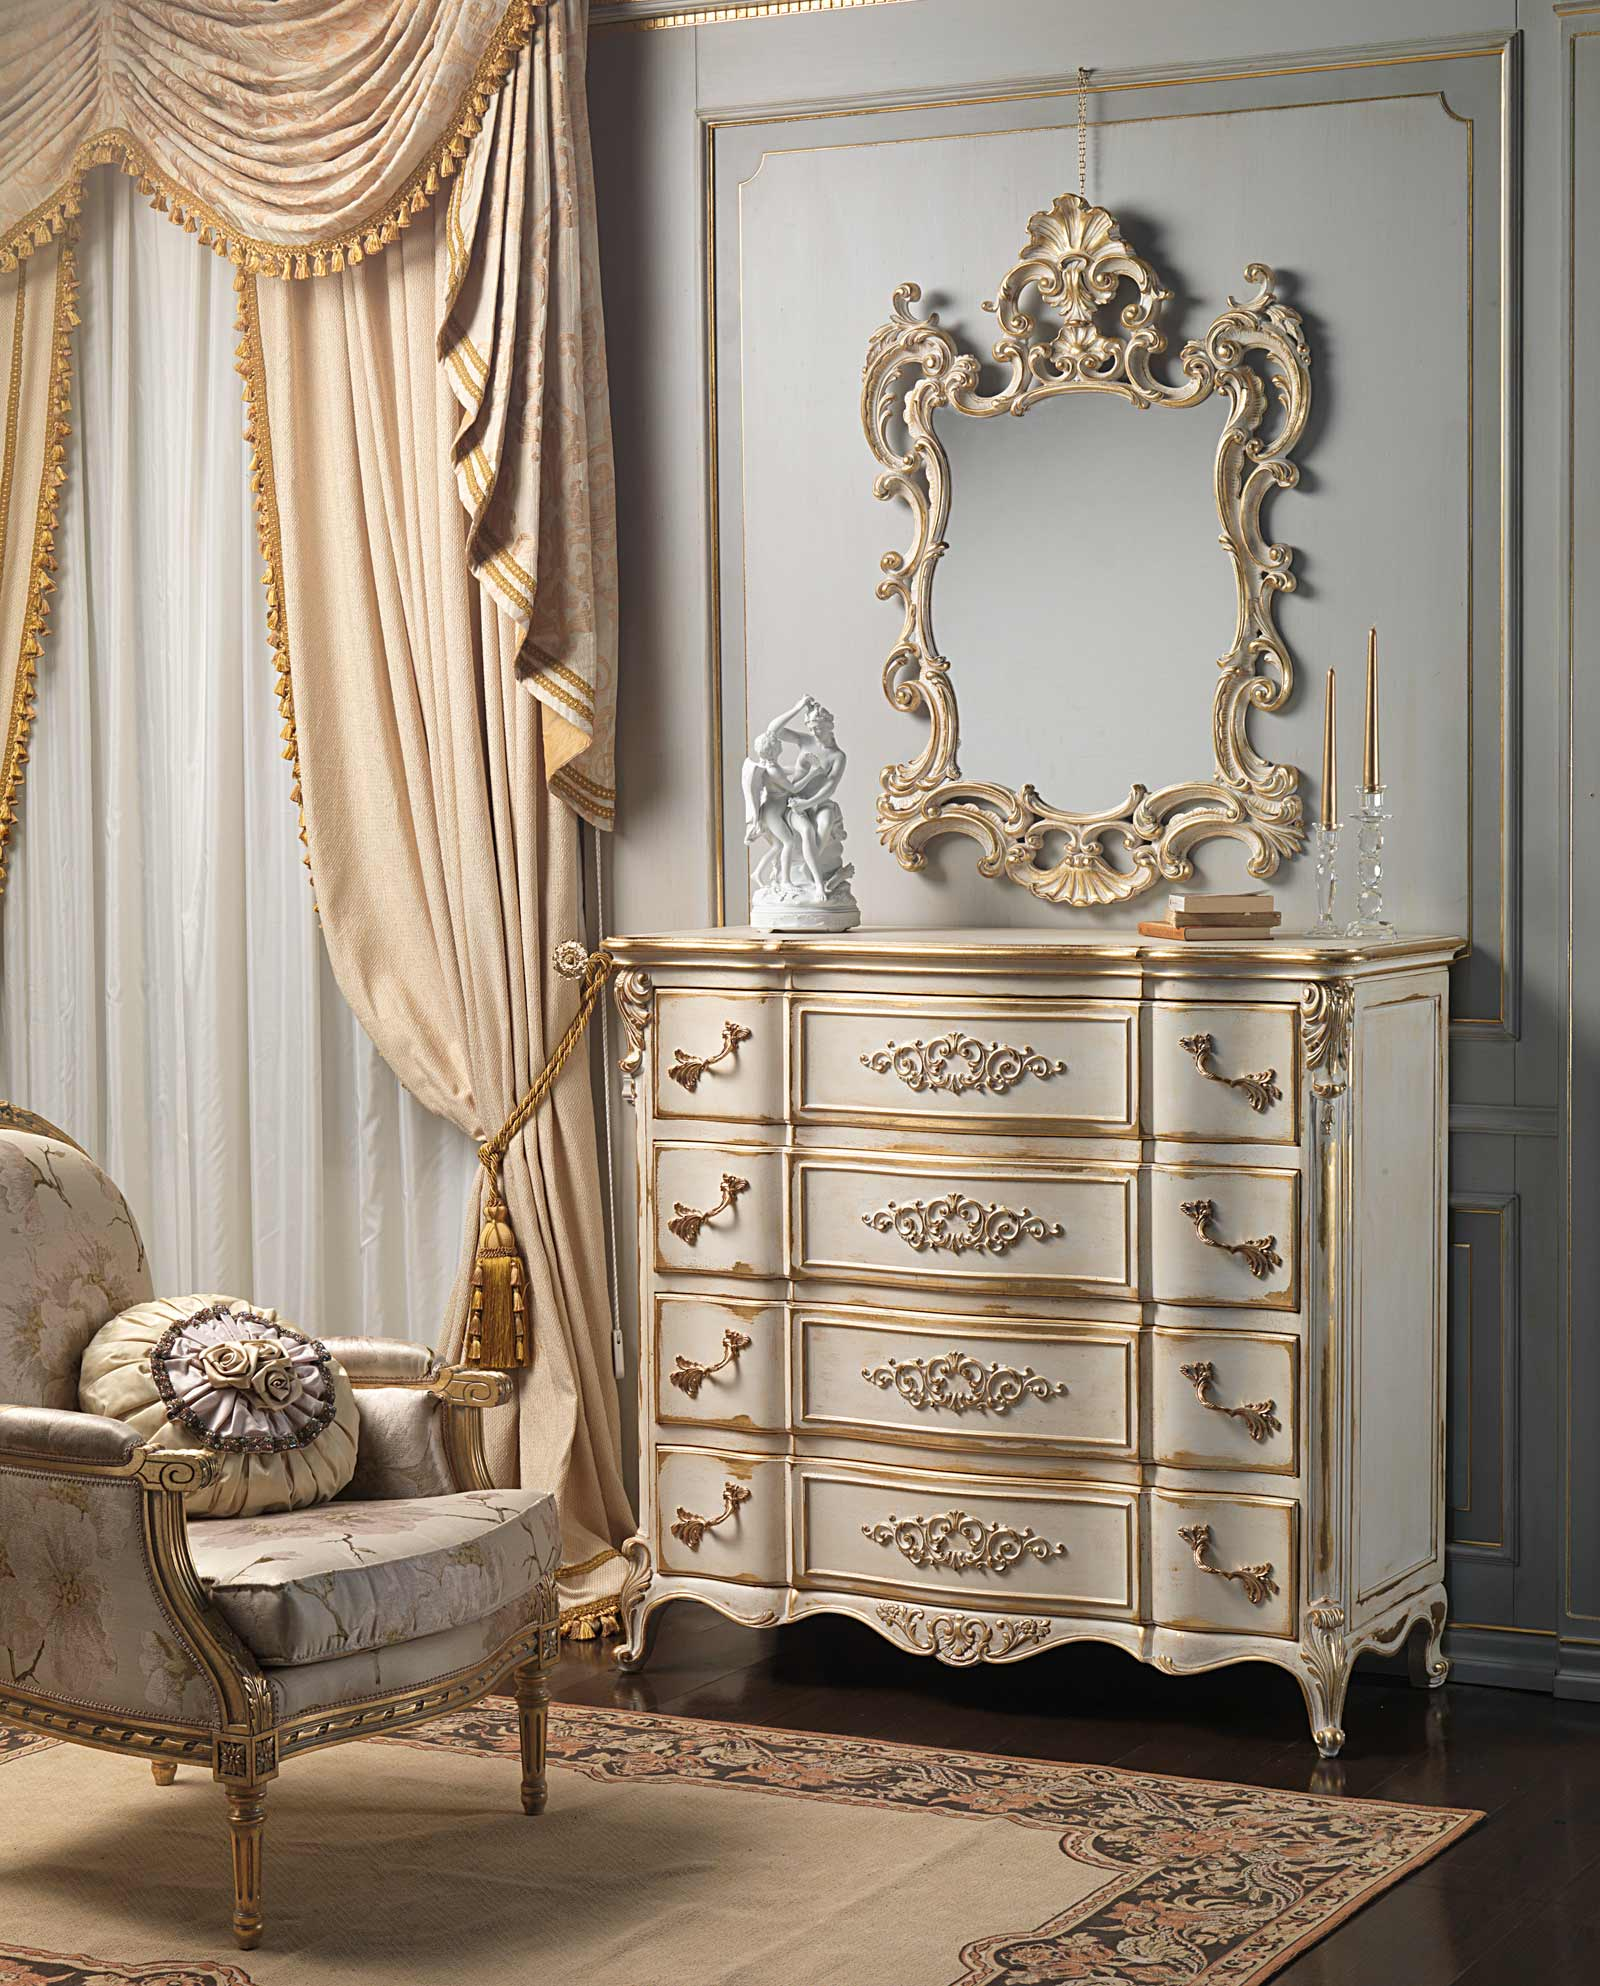 Classic Louis Xvi Bedroom Chest Of Drawers And Mirror